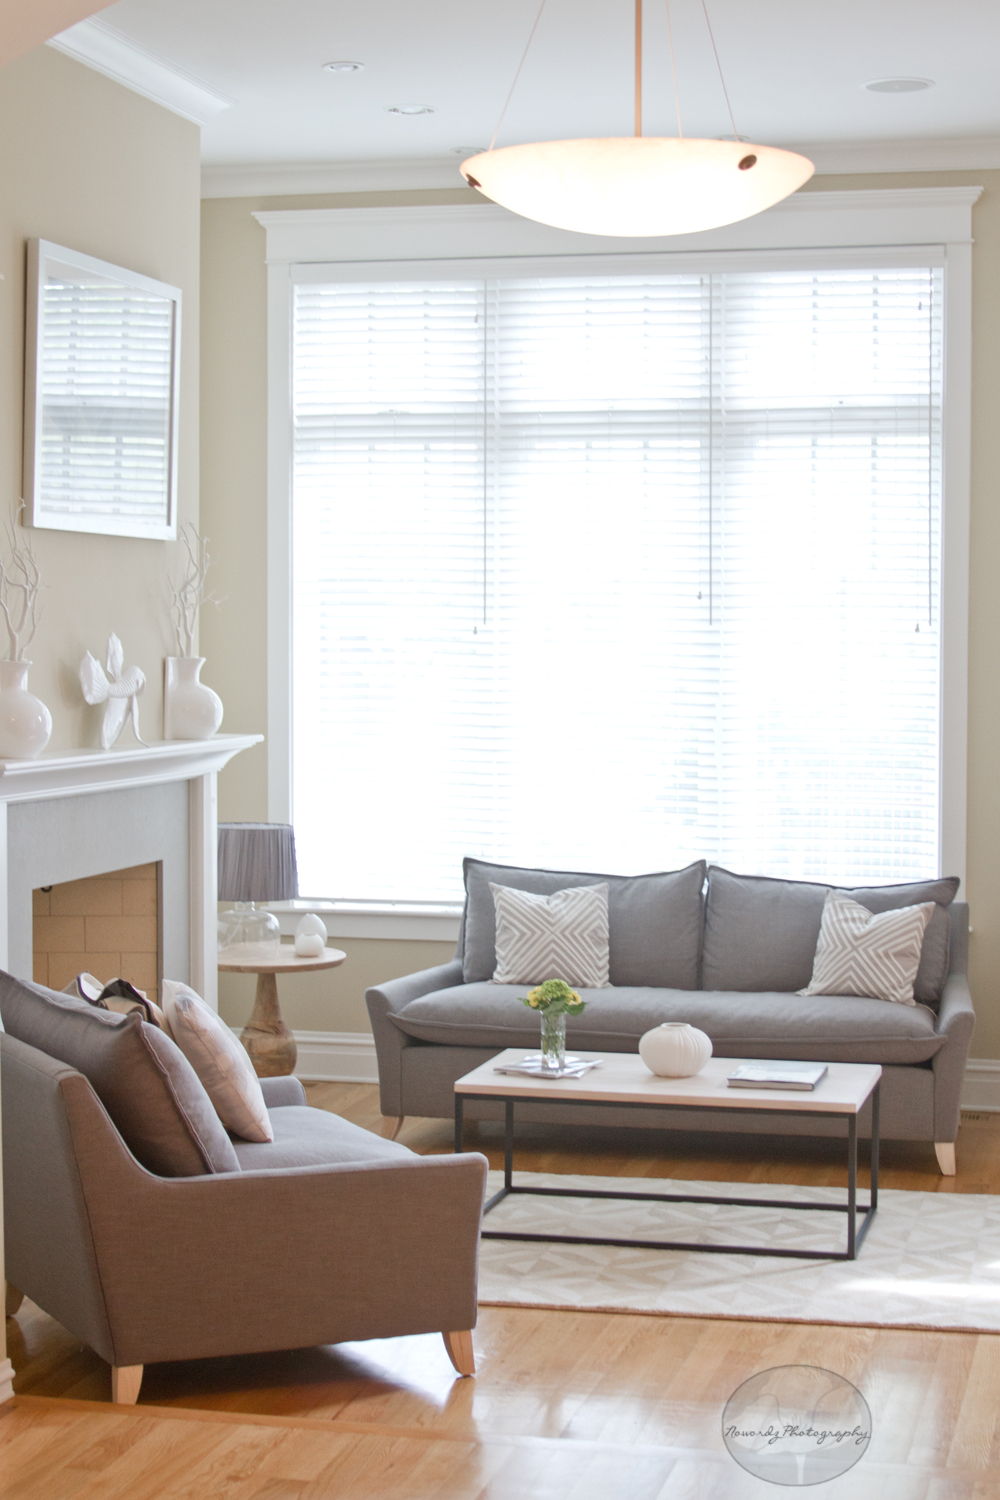 Living + Room: Big Style, Small Budget | This American Home